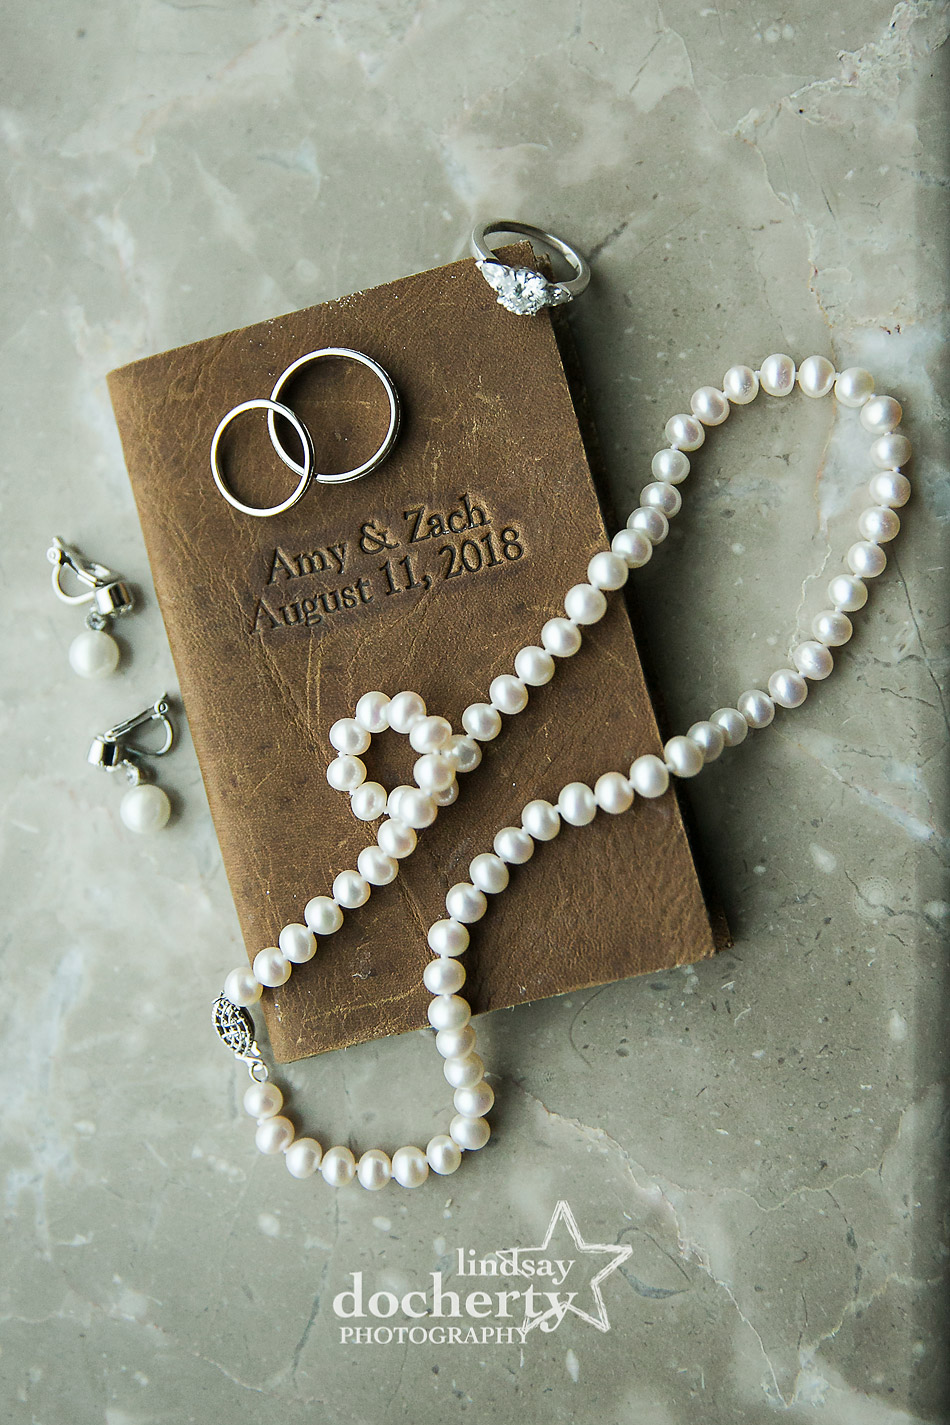 brides jewelry and couples vows in leather notebook